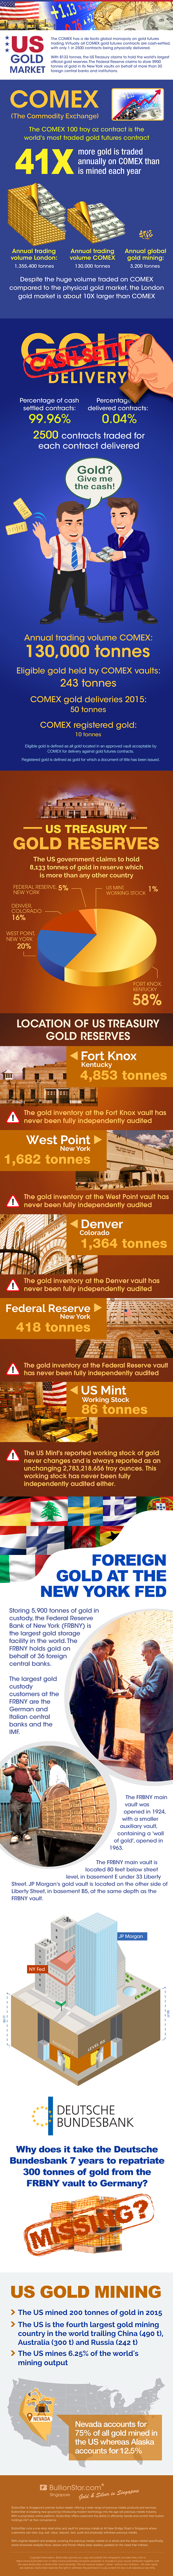 The US Gold Market